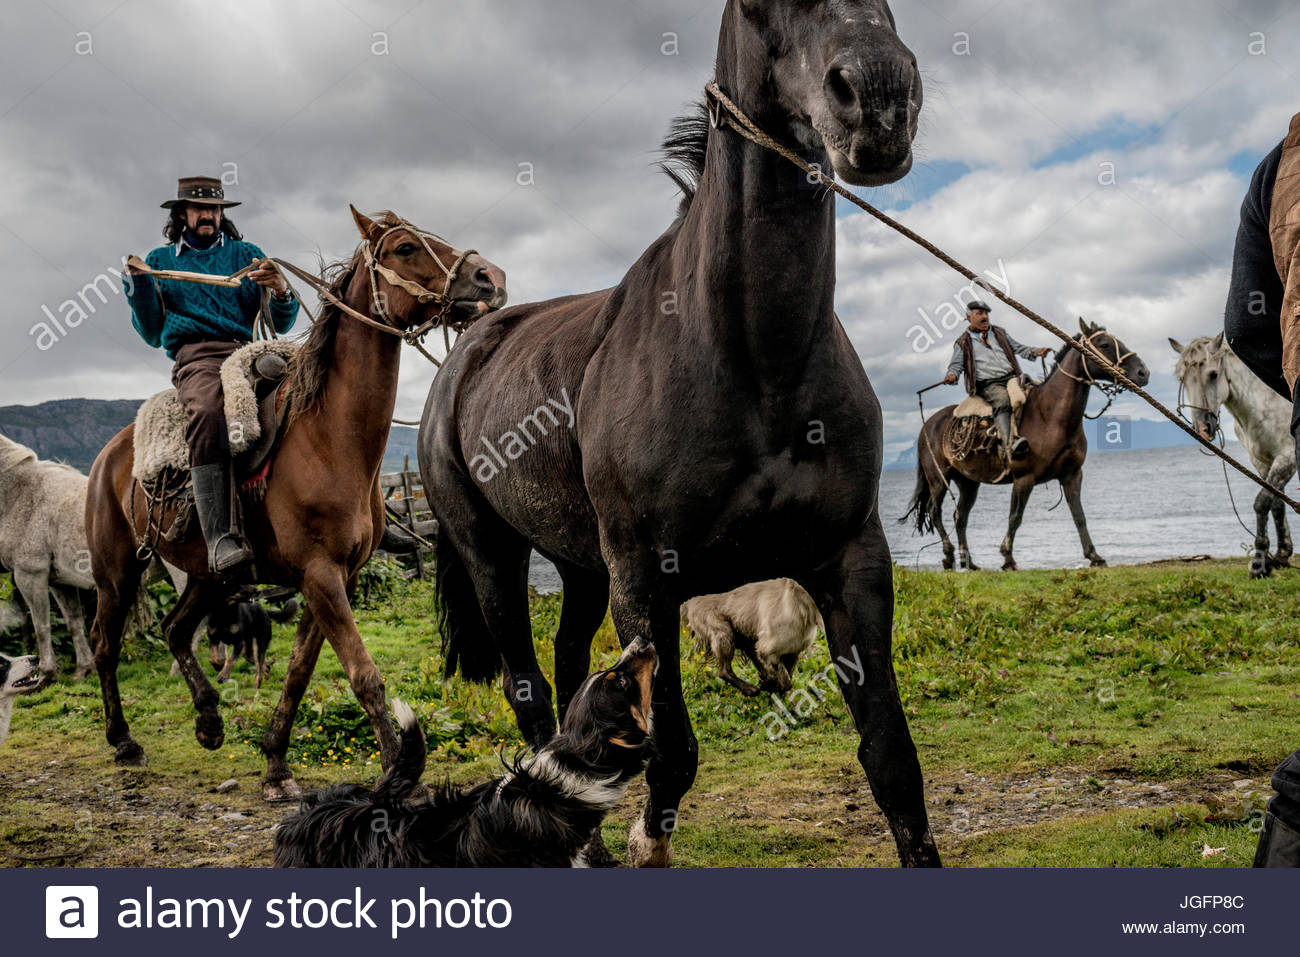 Bagualeros, or cowboys who capture feral livestock, herd horses for branding at a ranch. Stock Photo